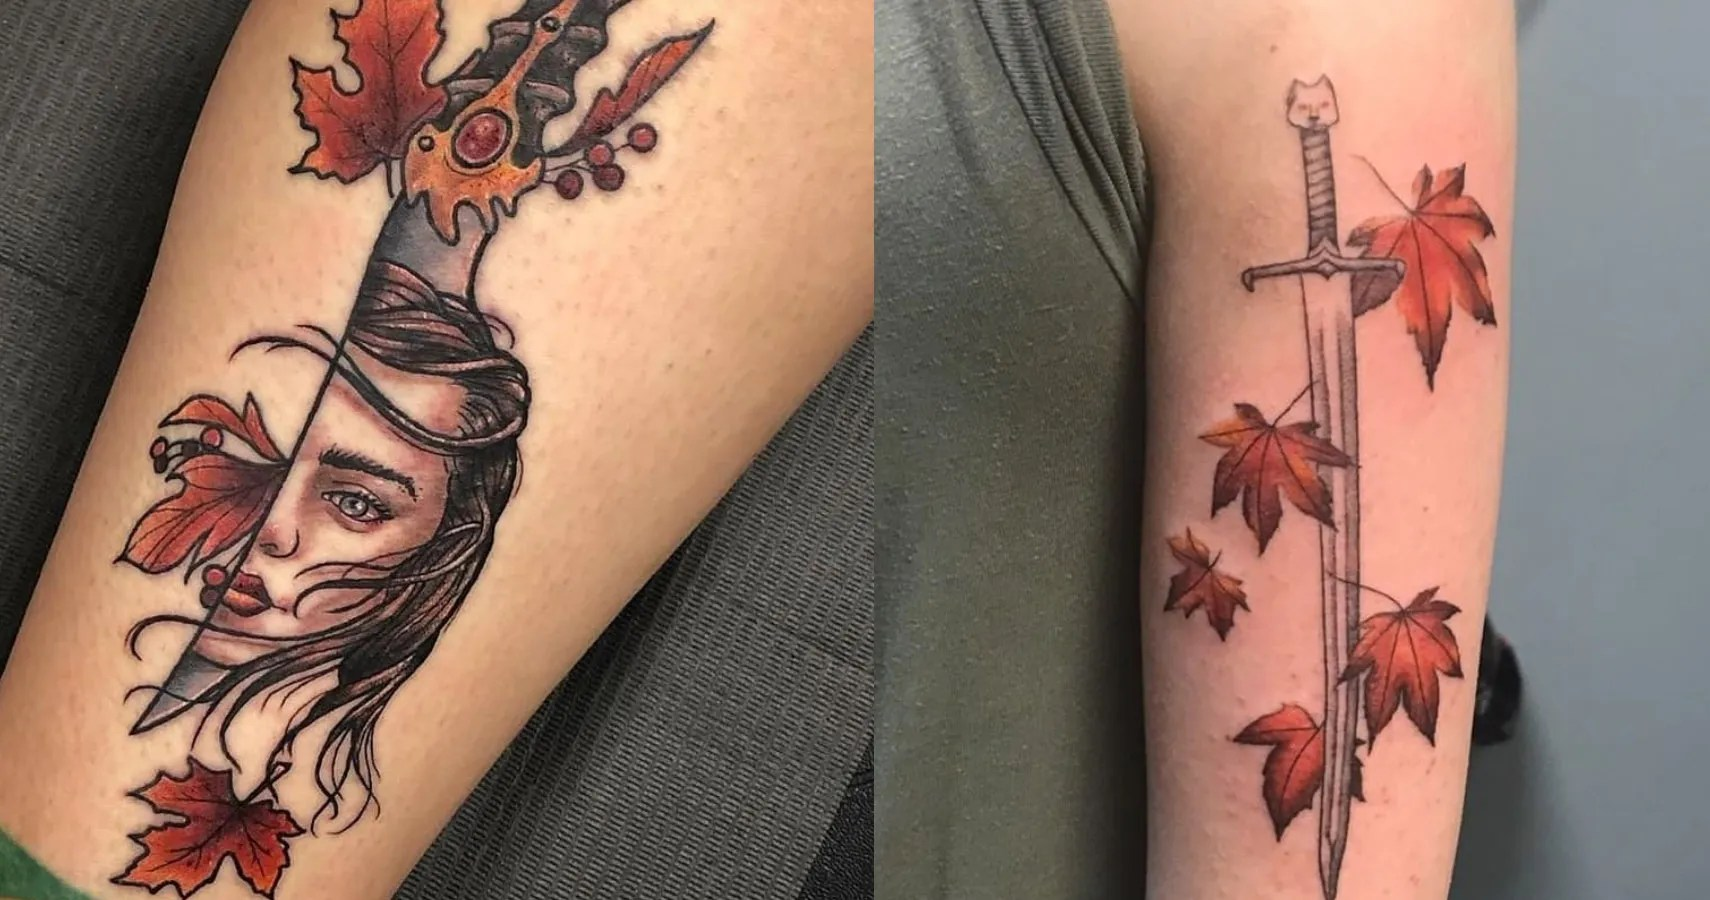 Game Of Thrones 10 Stark Tattoos Only Devoted Fans Would Get